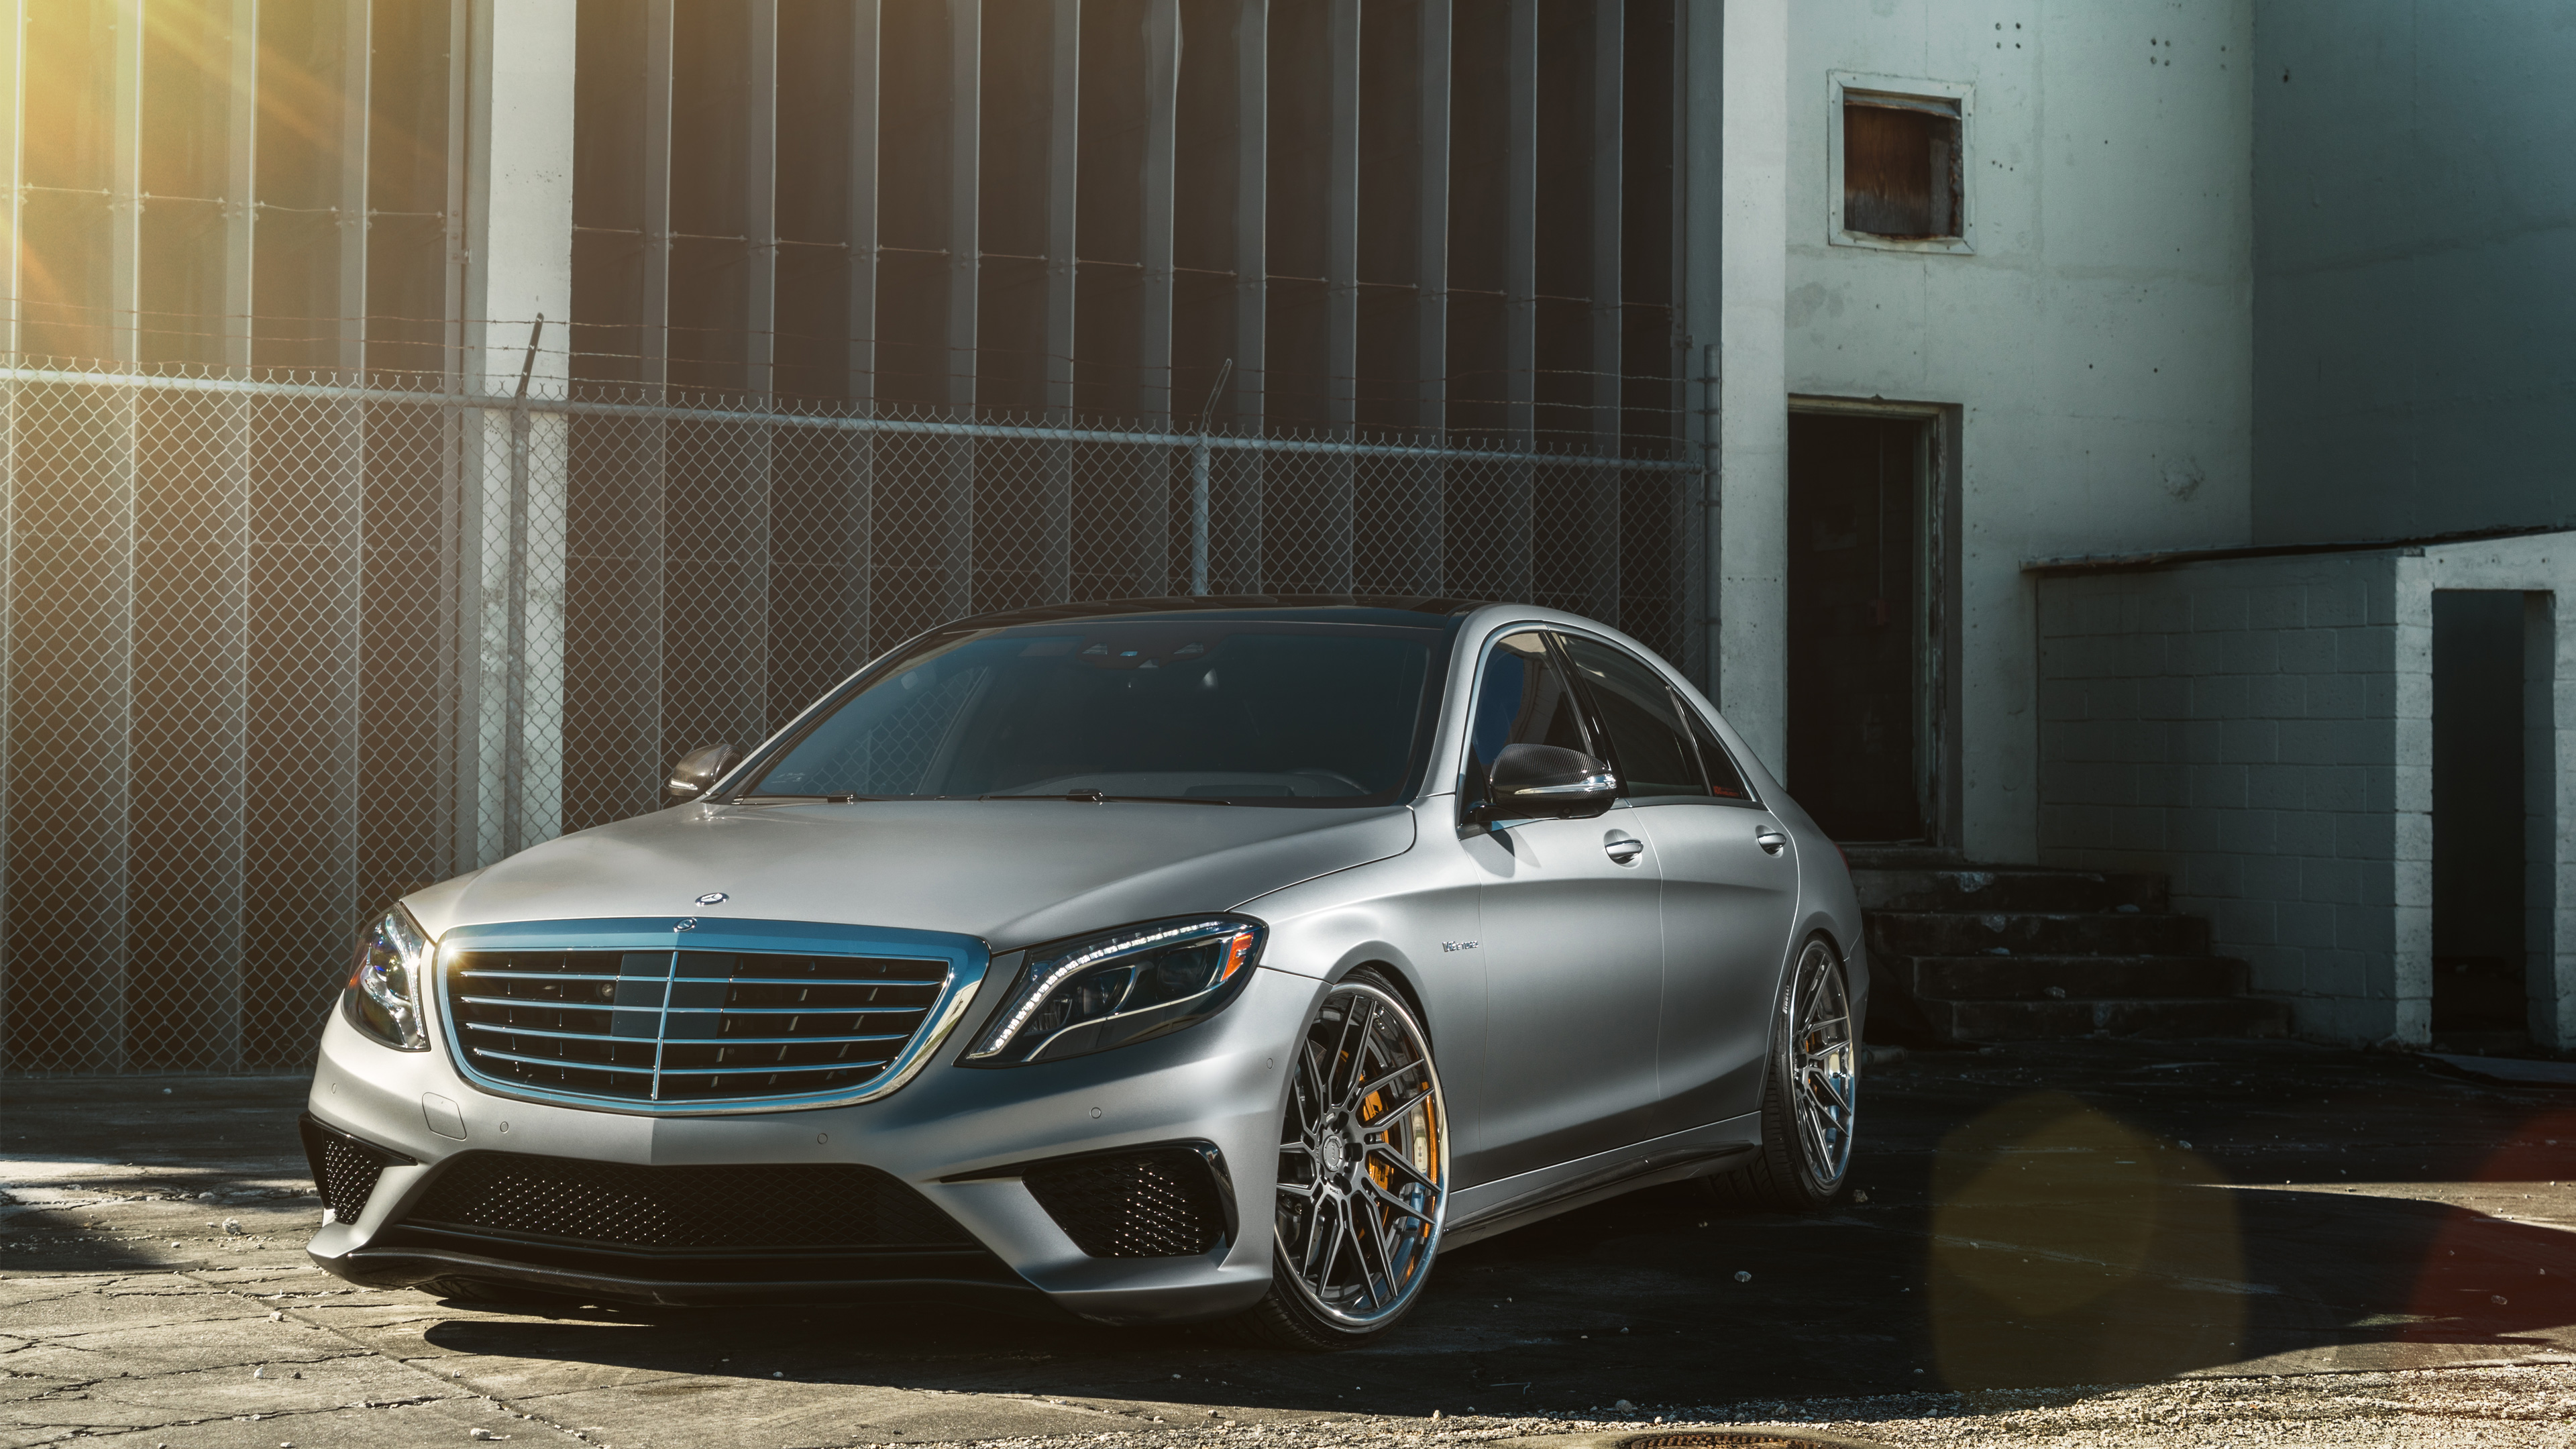 Adv1 mercedes amg e63 s wallpaper hd car wallpapers id for Mercedes benz e63 s amg